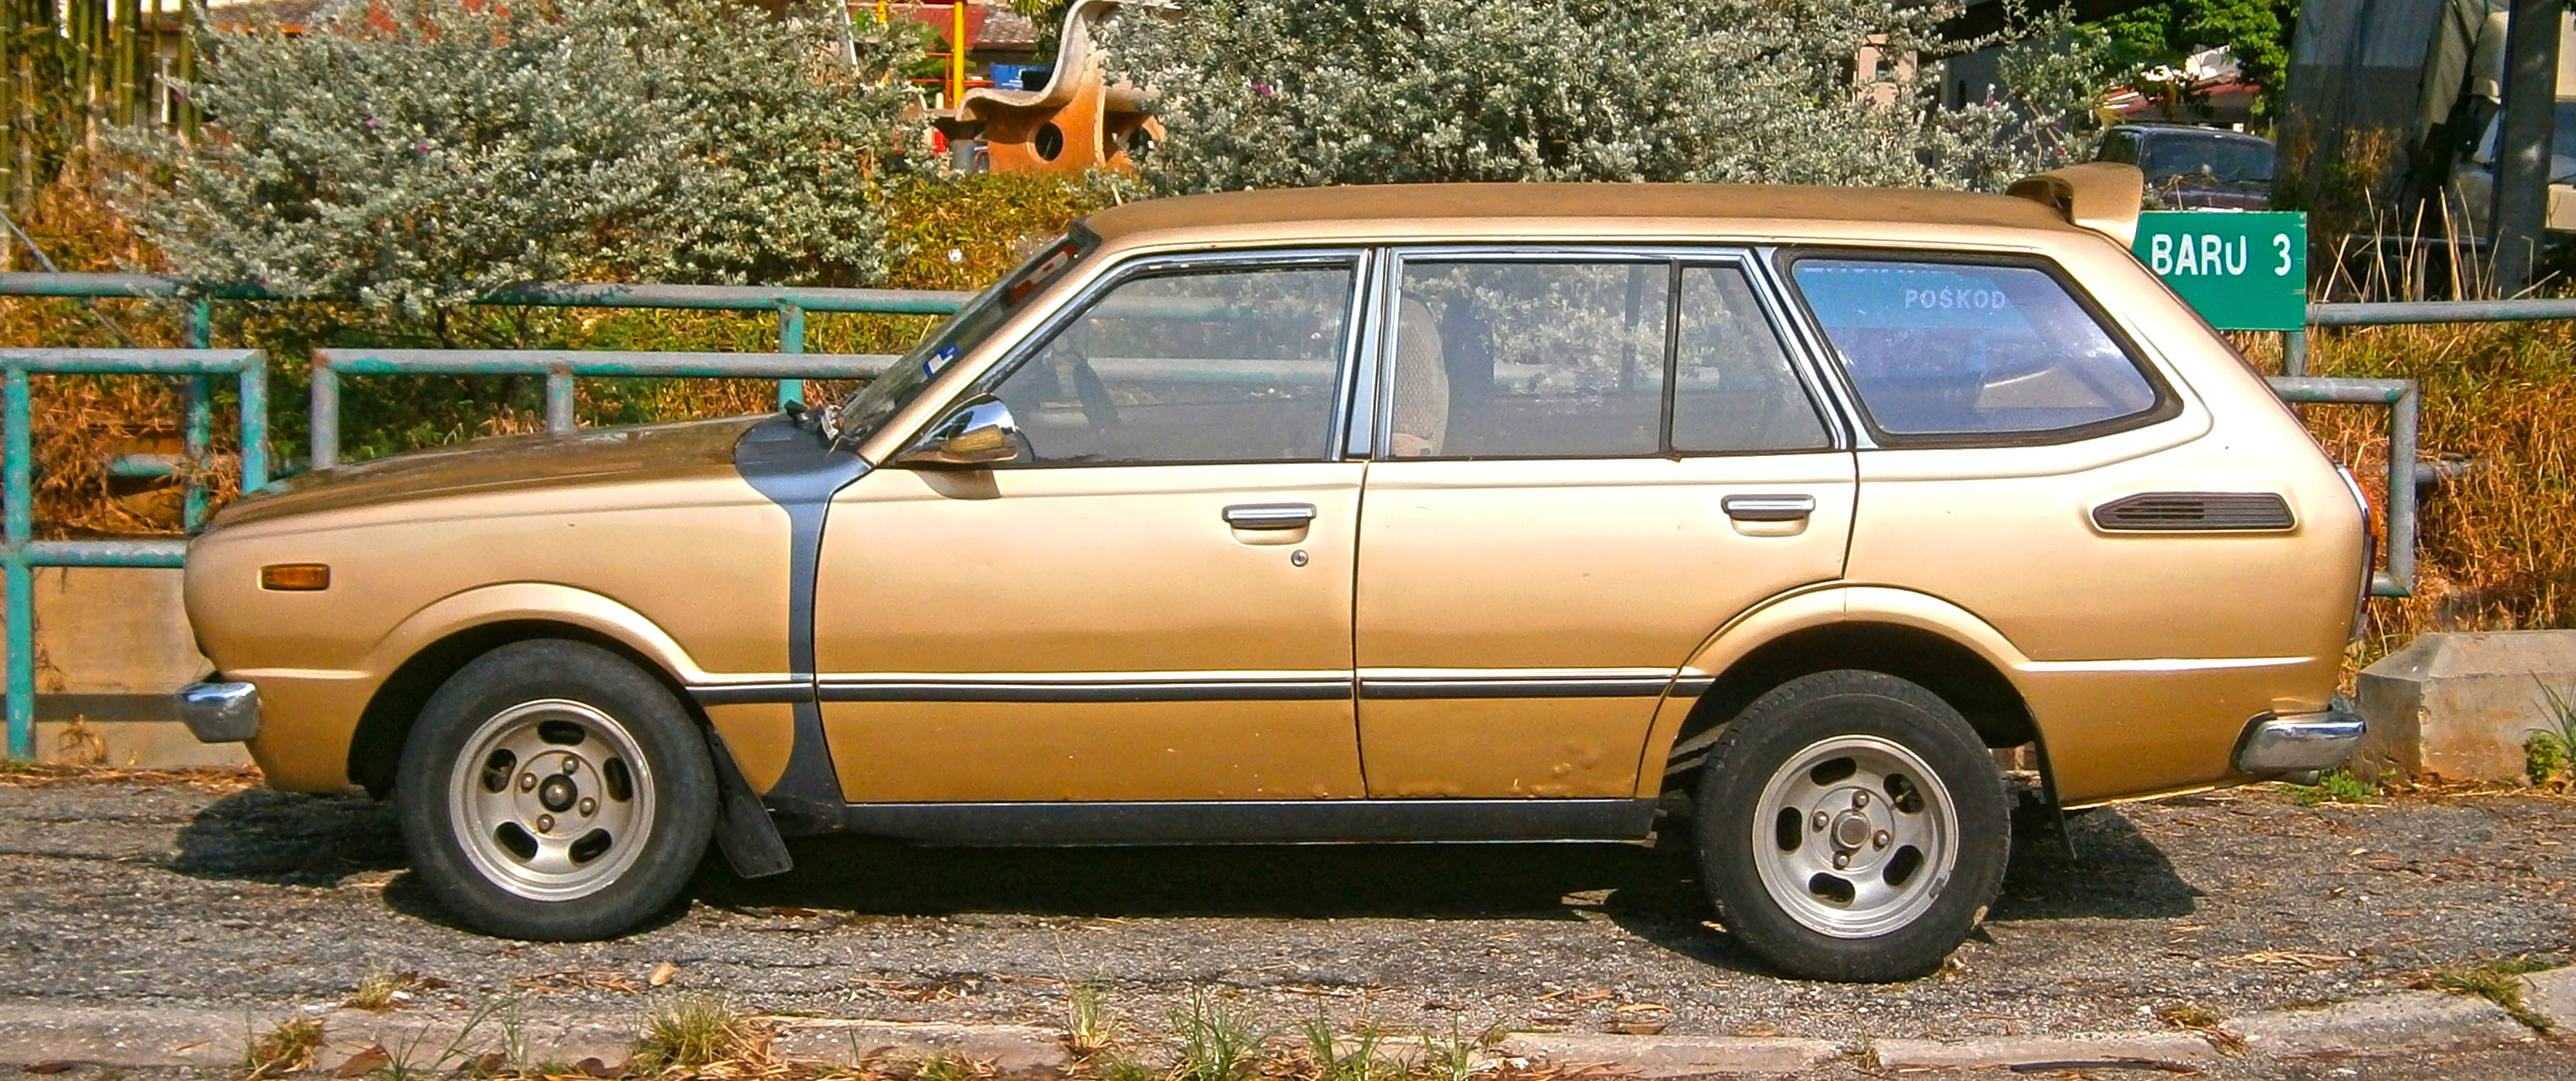 File:1979 Toyota Corolla (KE36) 5 Door Station Wagon (modified)